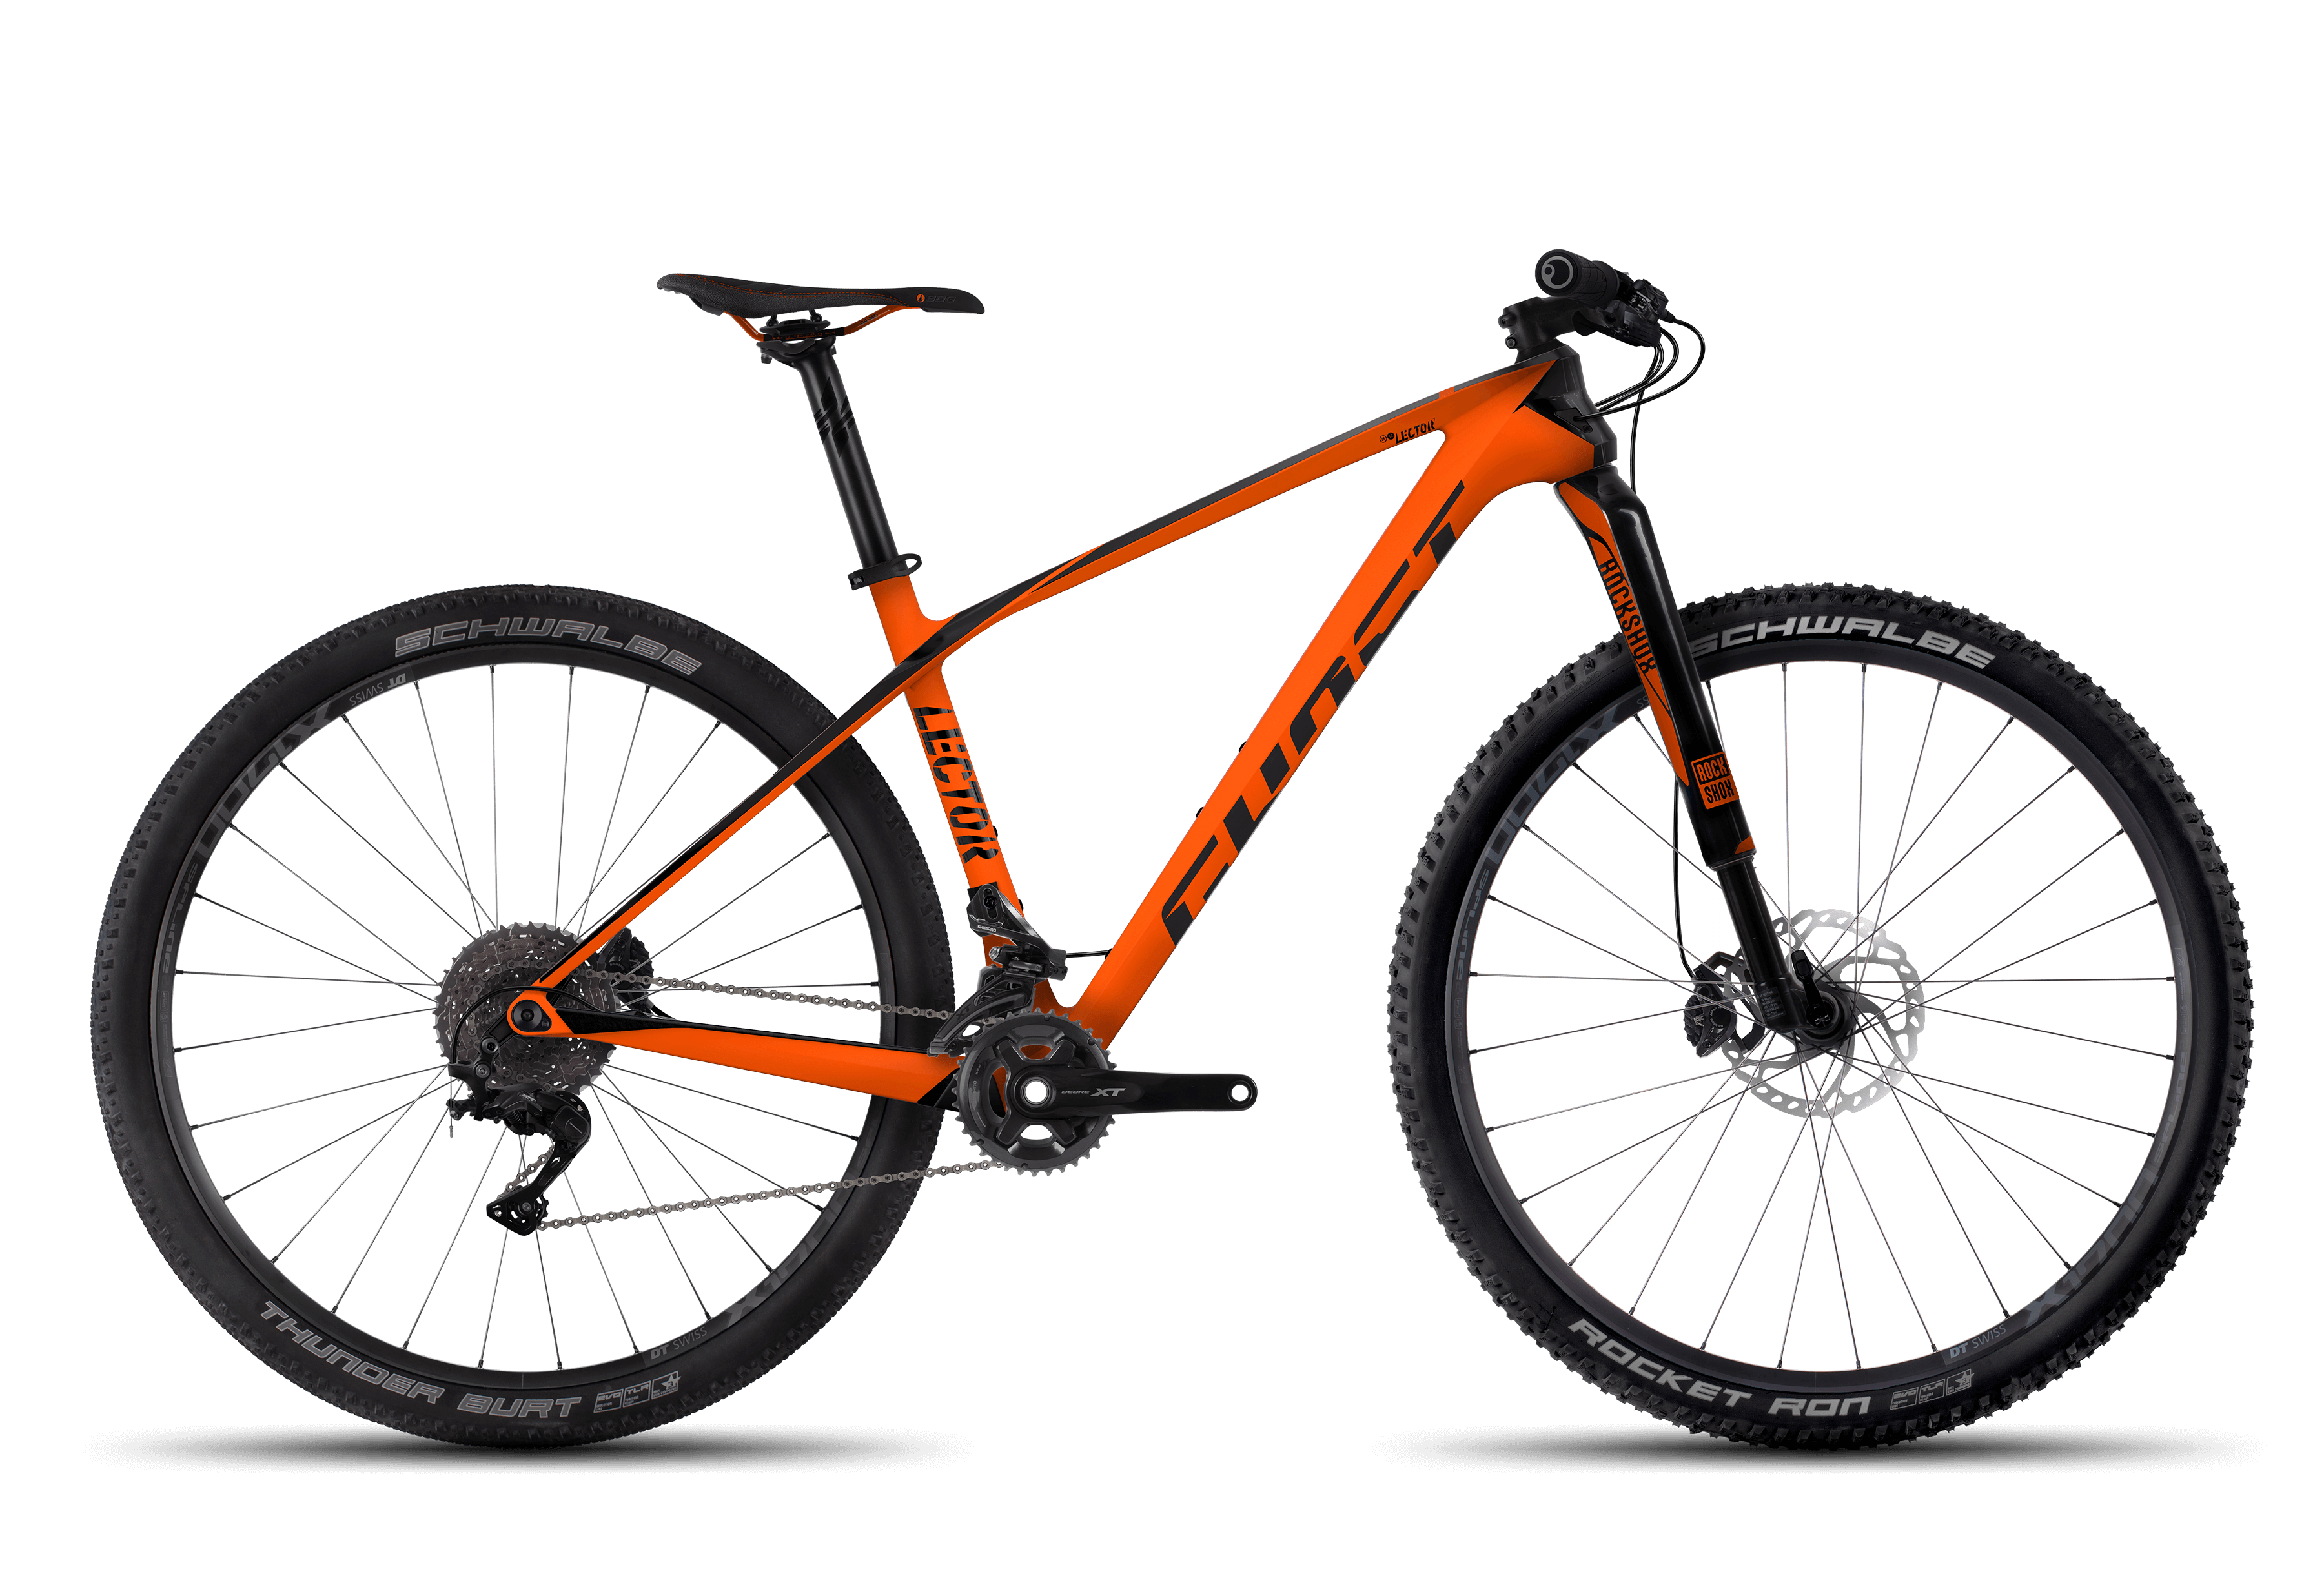 Hardtail Bikes Lector 7 Lc